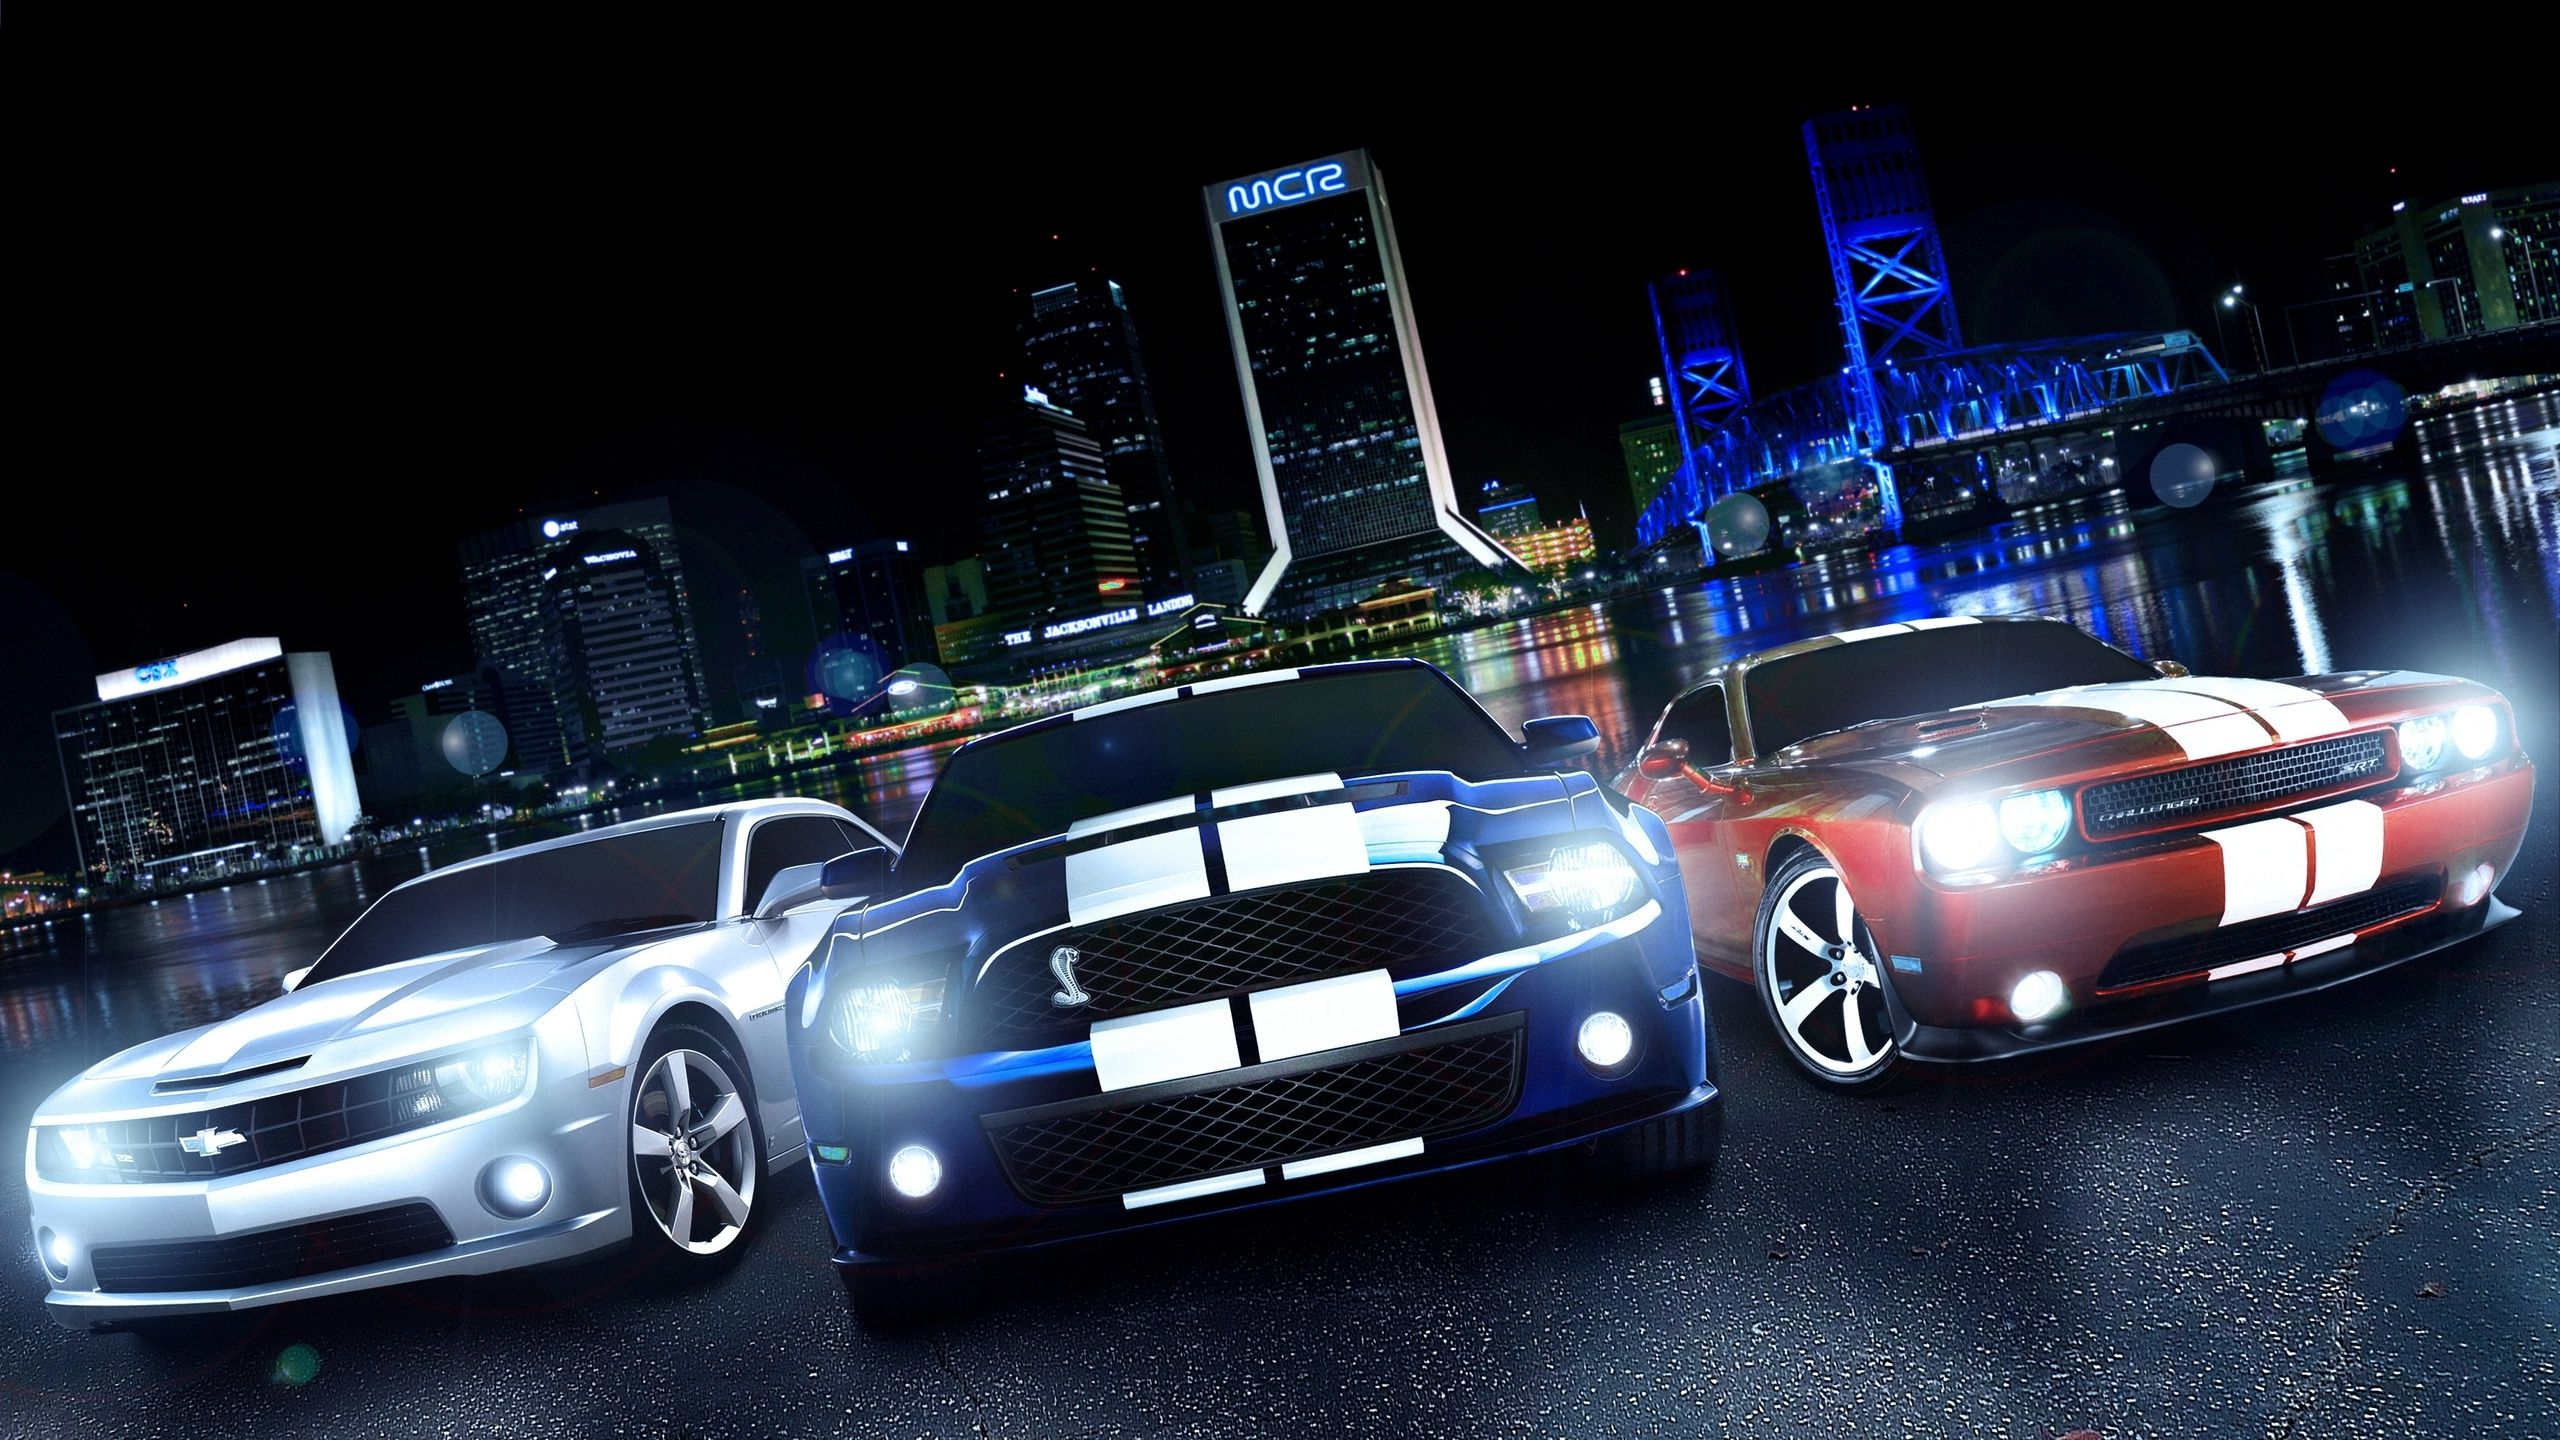 Pin by JC on wheels Mustang wallpaper, Car wallpapers